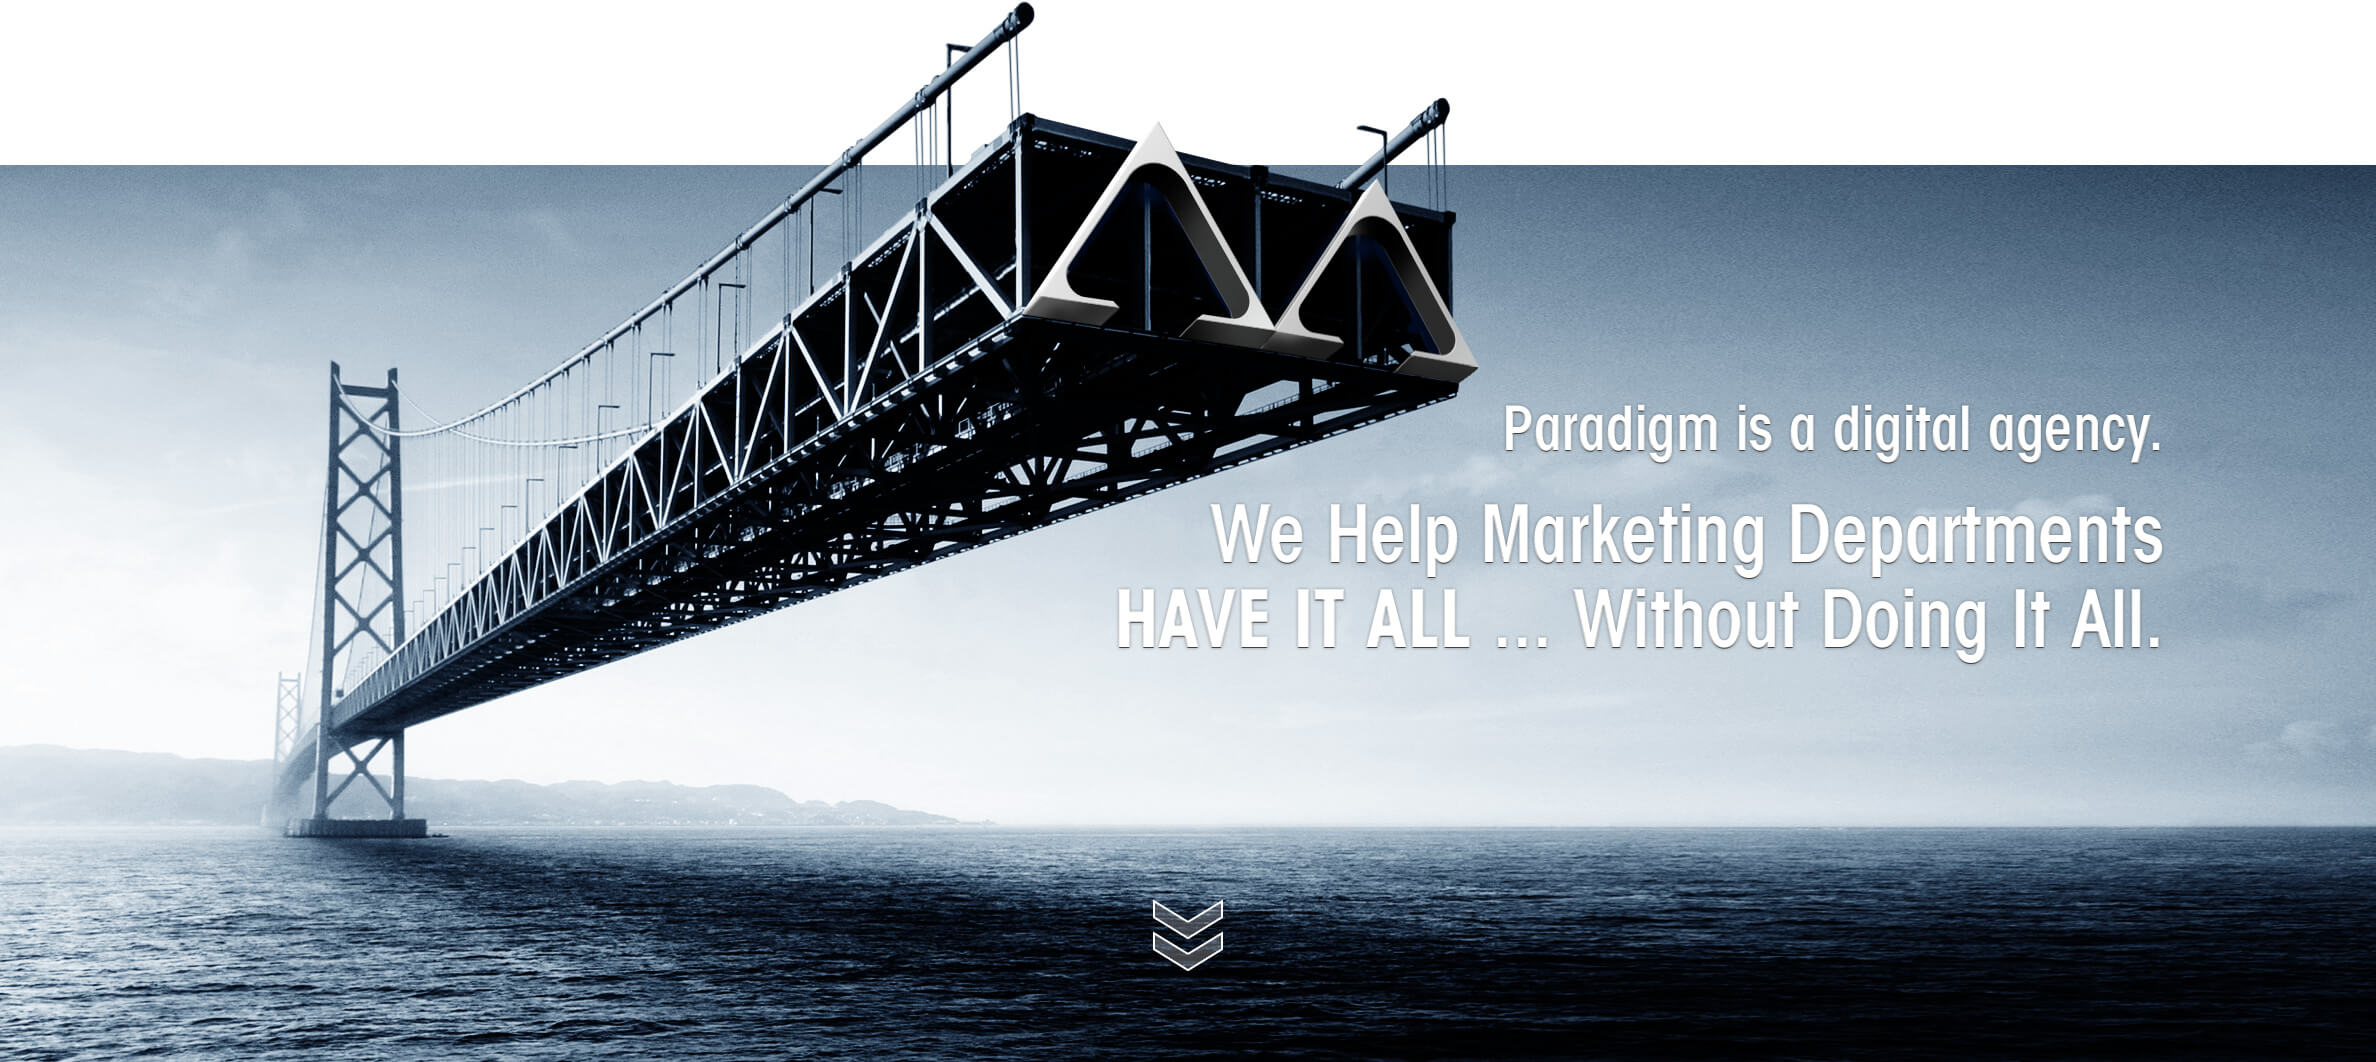 Paradigm is a digital agency. We Help Marketing Departments HAVE IT ALL ... Without Doing It All.